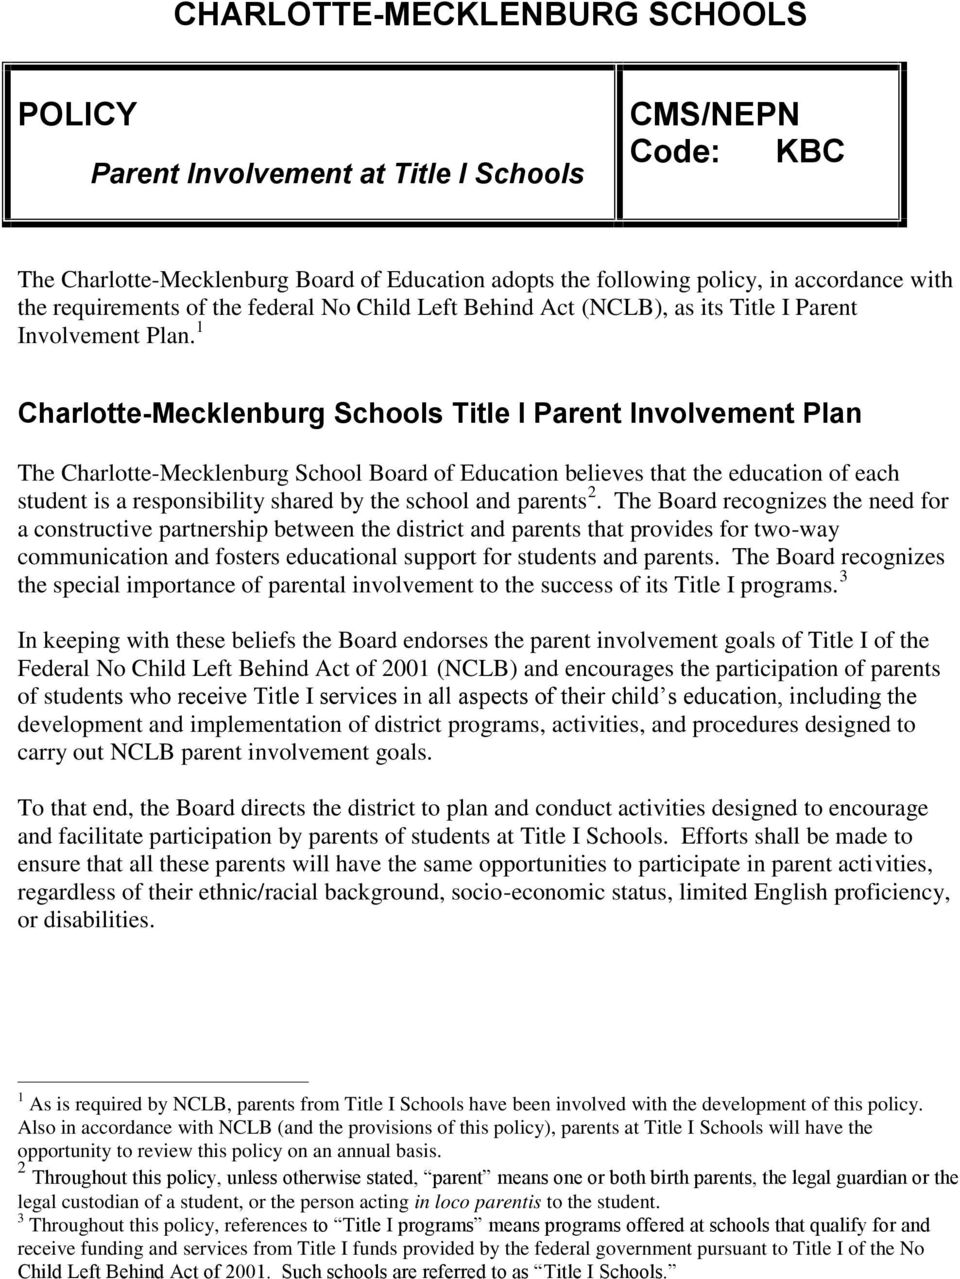 1 Charlotte-Mecklenburg Schools Title I Parent Involvement Plan The Charlotte-Mecklenburg School Board of Education believes that the education of each student is a responsibility shared by the